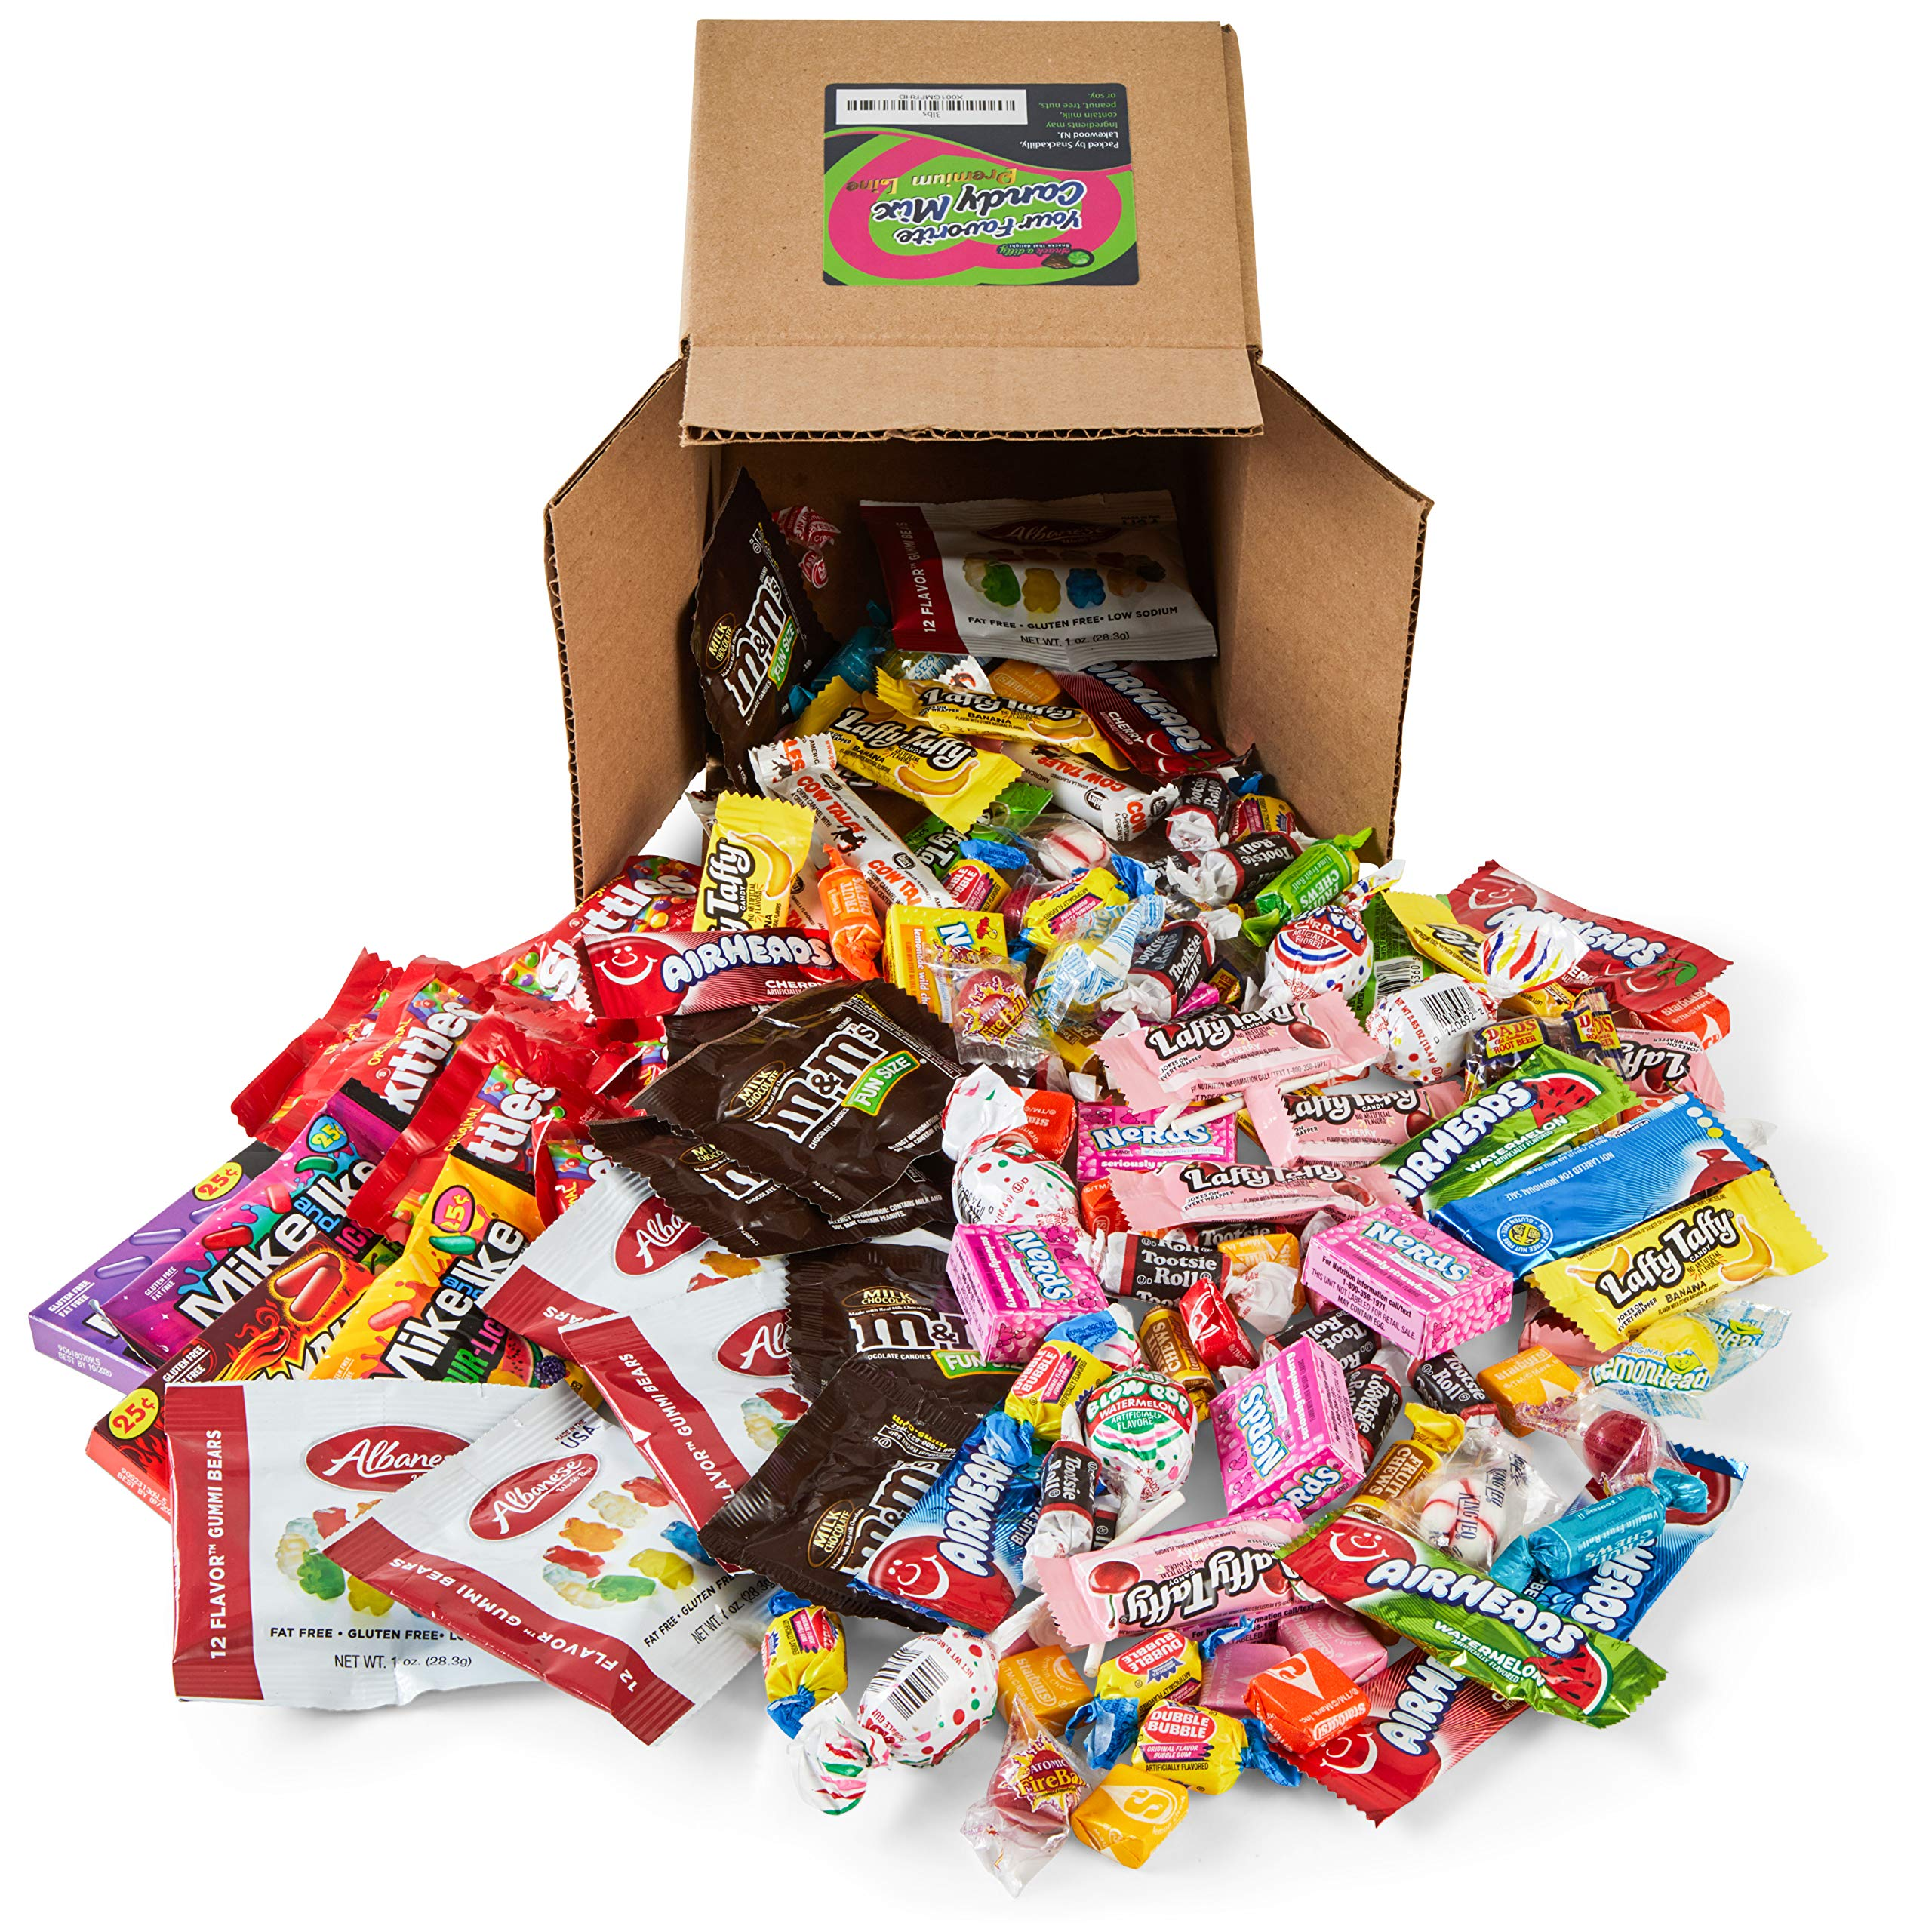 Your Favorite Mix of Premium Candy! 7.5 LB of Gummy Bears, Laffy Taffy, Airheads, Skittles, M&M's, Blow Pop's, Tootsie Rolls, Mike & Ike's, & More. by Snackadilly